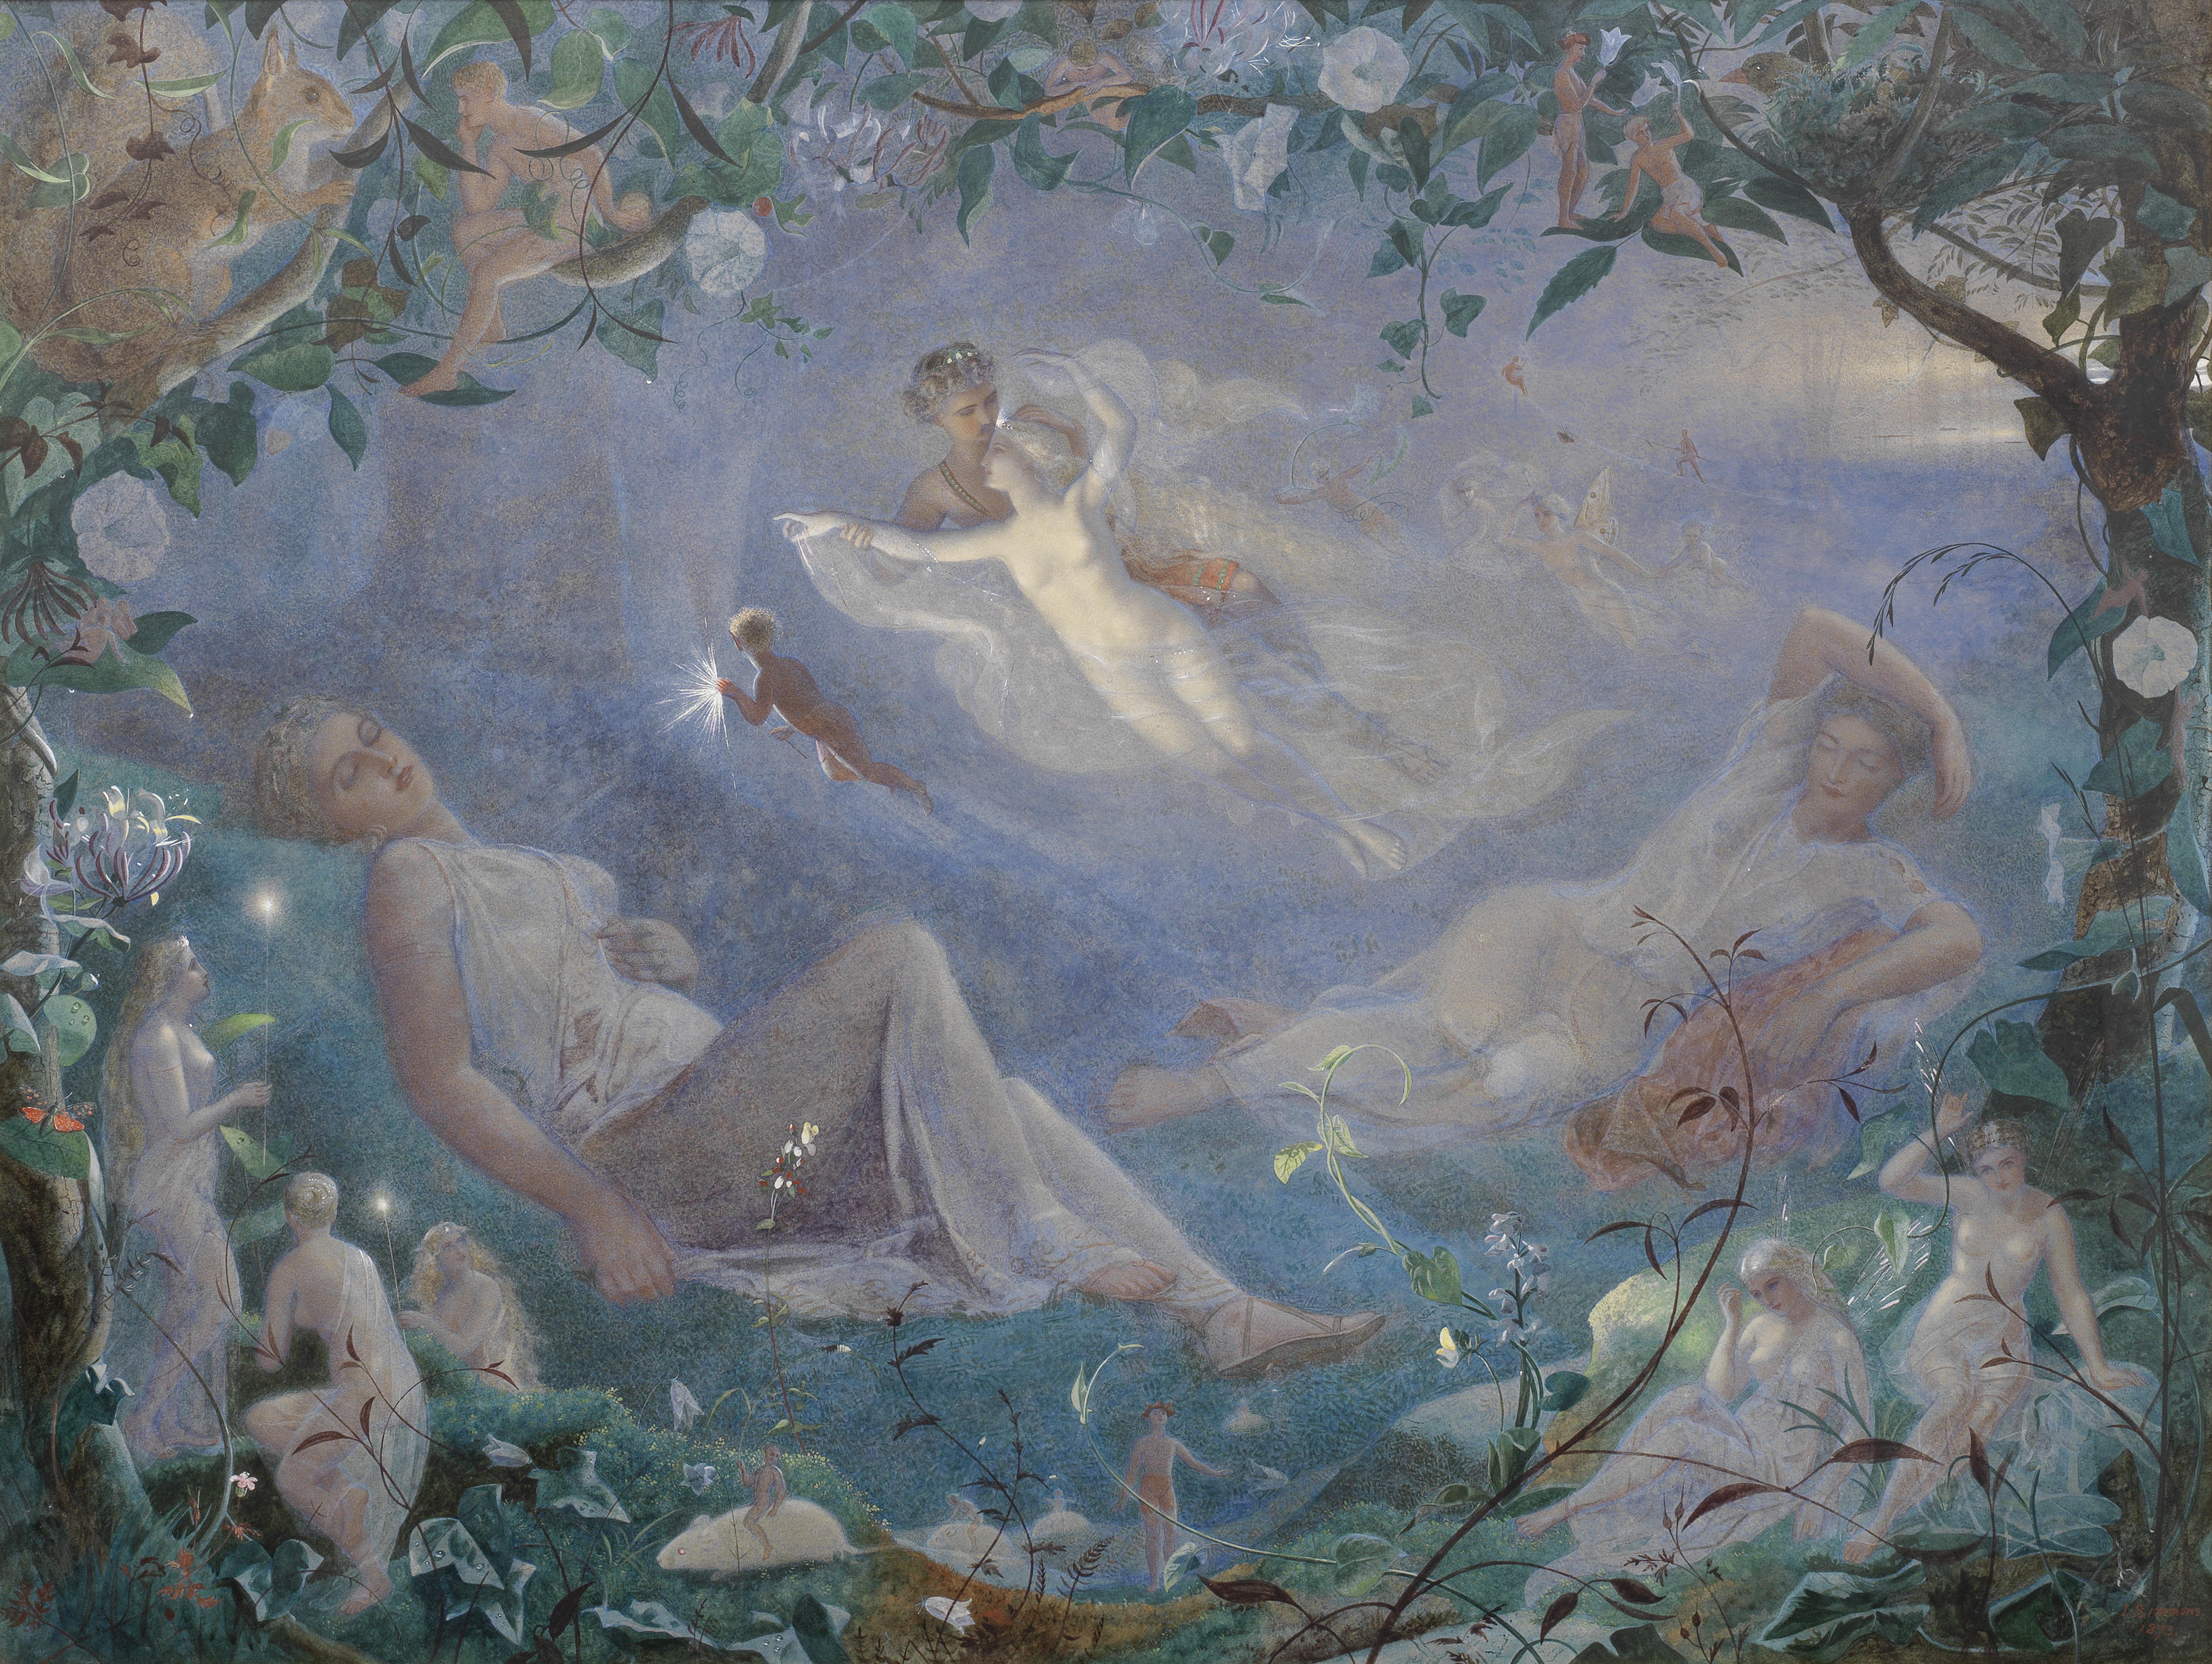 https://upload.wikimedia.org/wikipedia/commons/9/96/Scene_from_%27A_Midsummer_Night%27s_Dream%27_by_John_Simmons%2C_1873%2C_watercolor.jpg